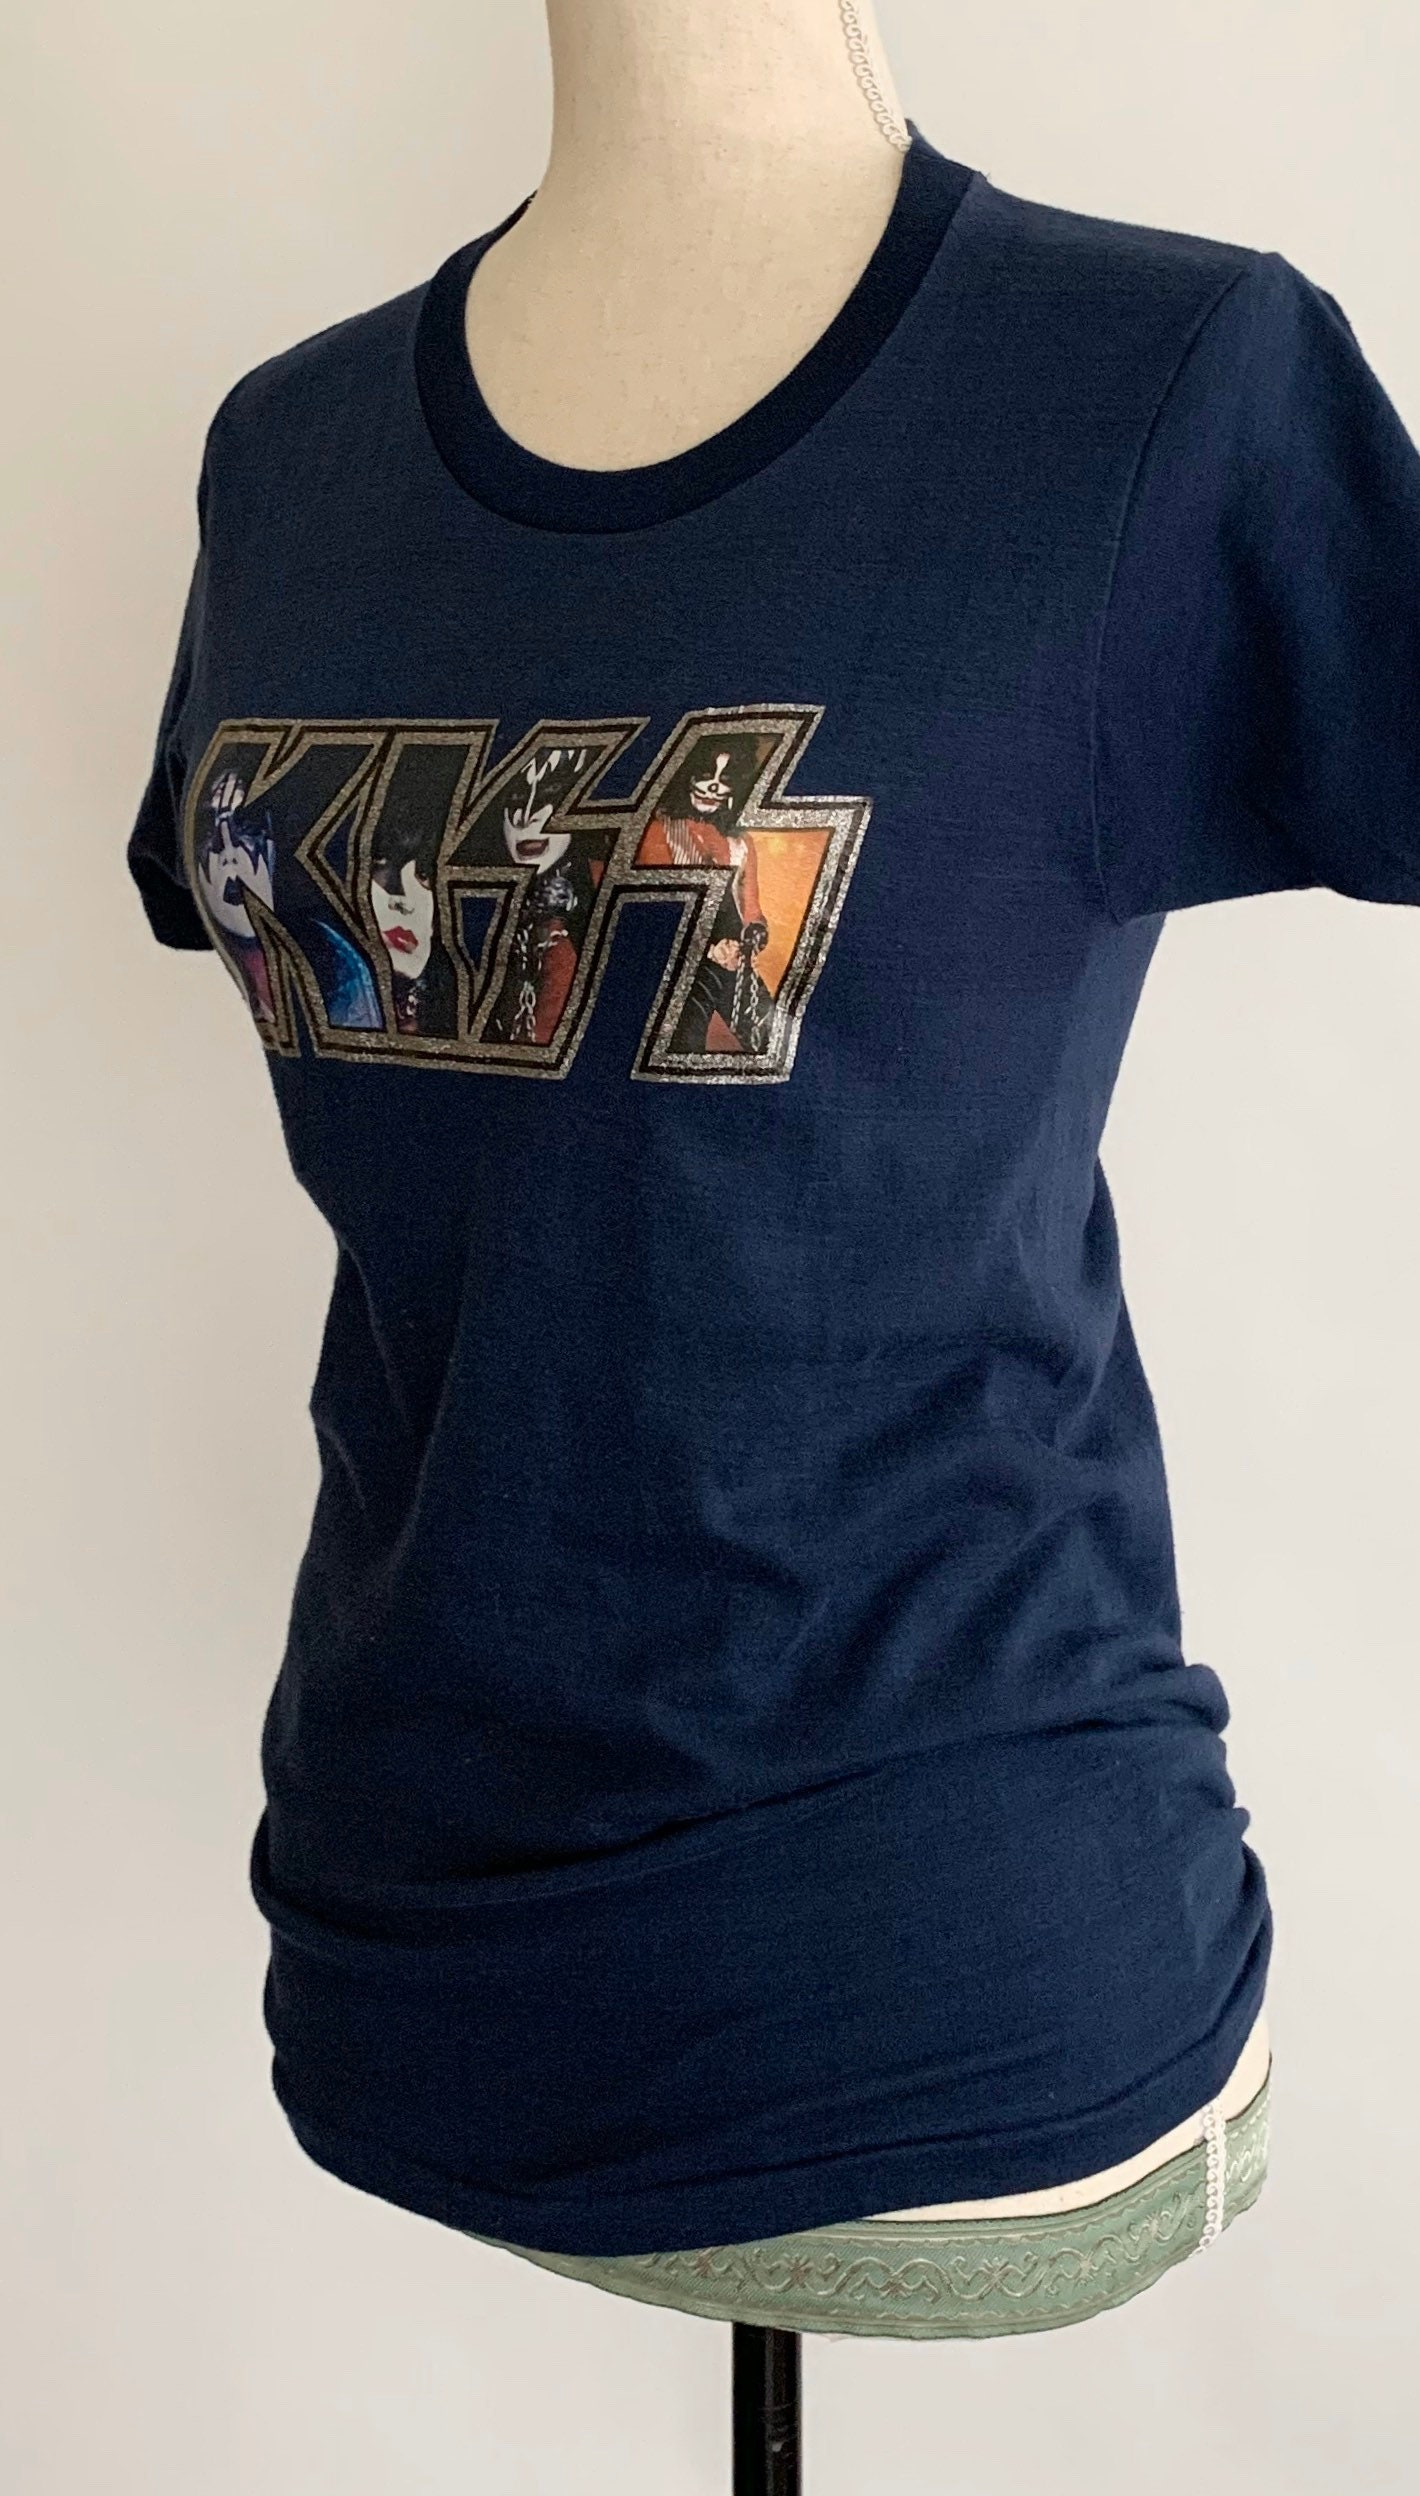 Vintage KISS T Shirt 70s Glitter Iron On Transfer Soft 50 50 Poly Cotton Rare Graphic Tee Dark Midnight Blue Made in USA Size XS S